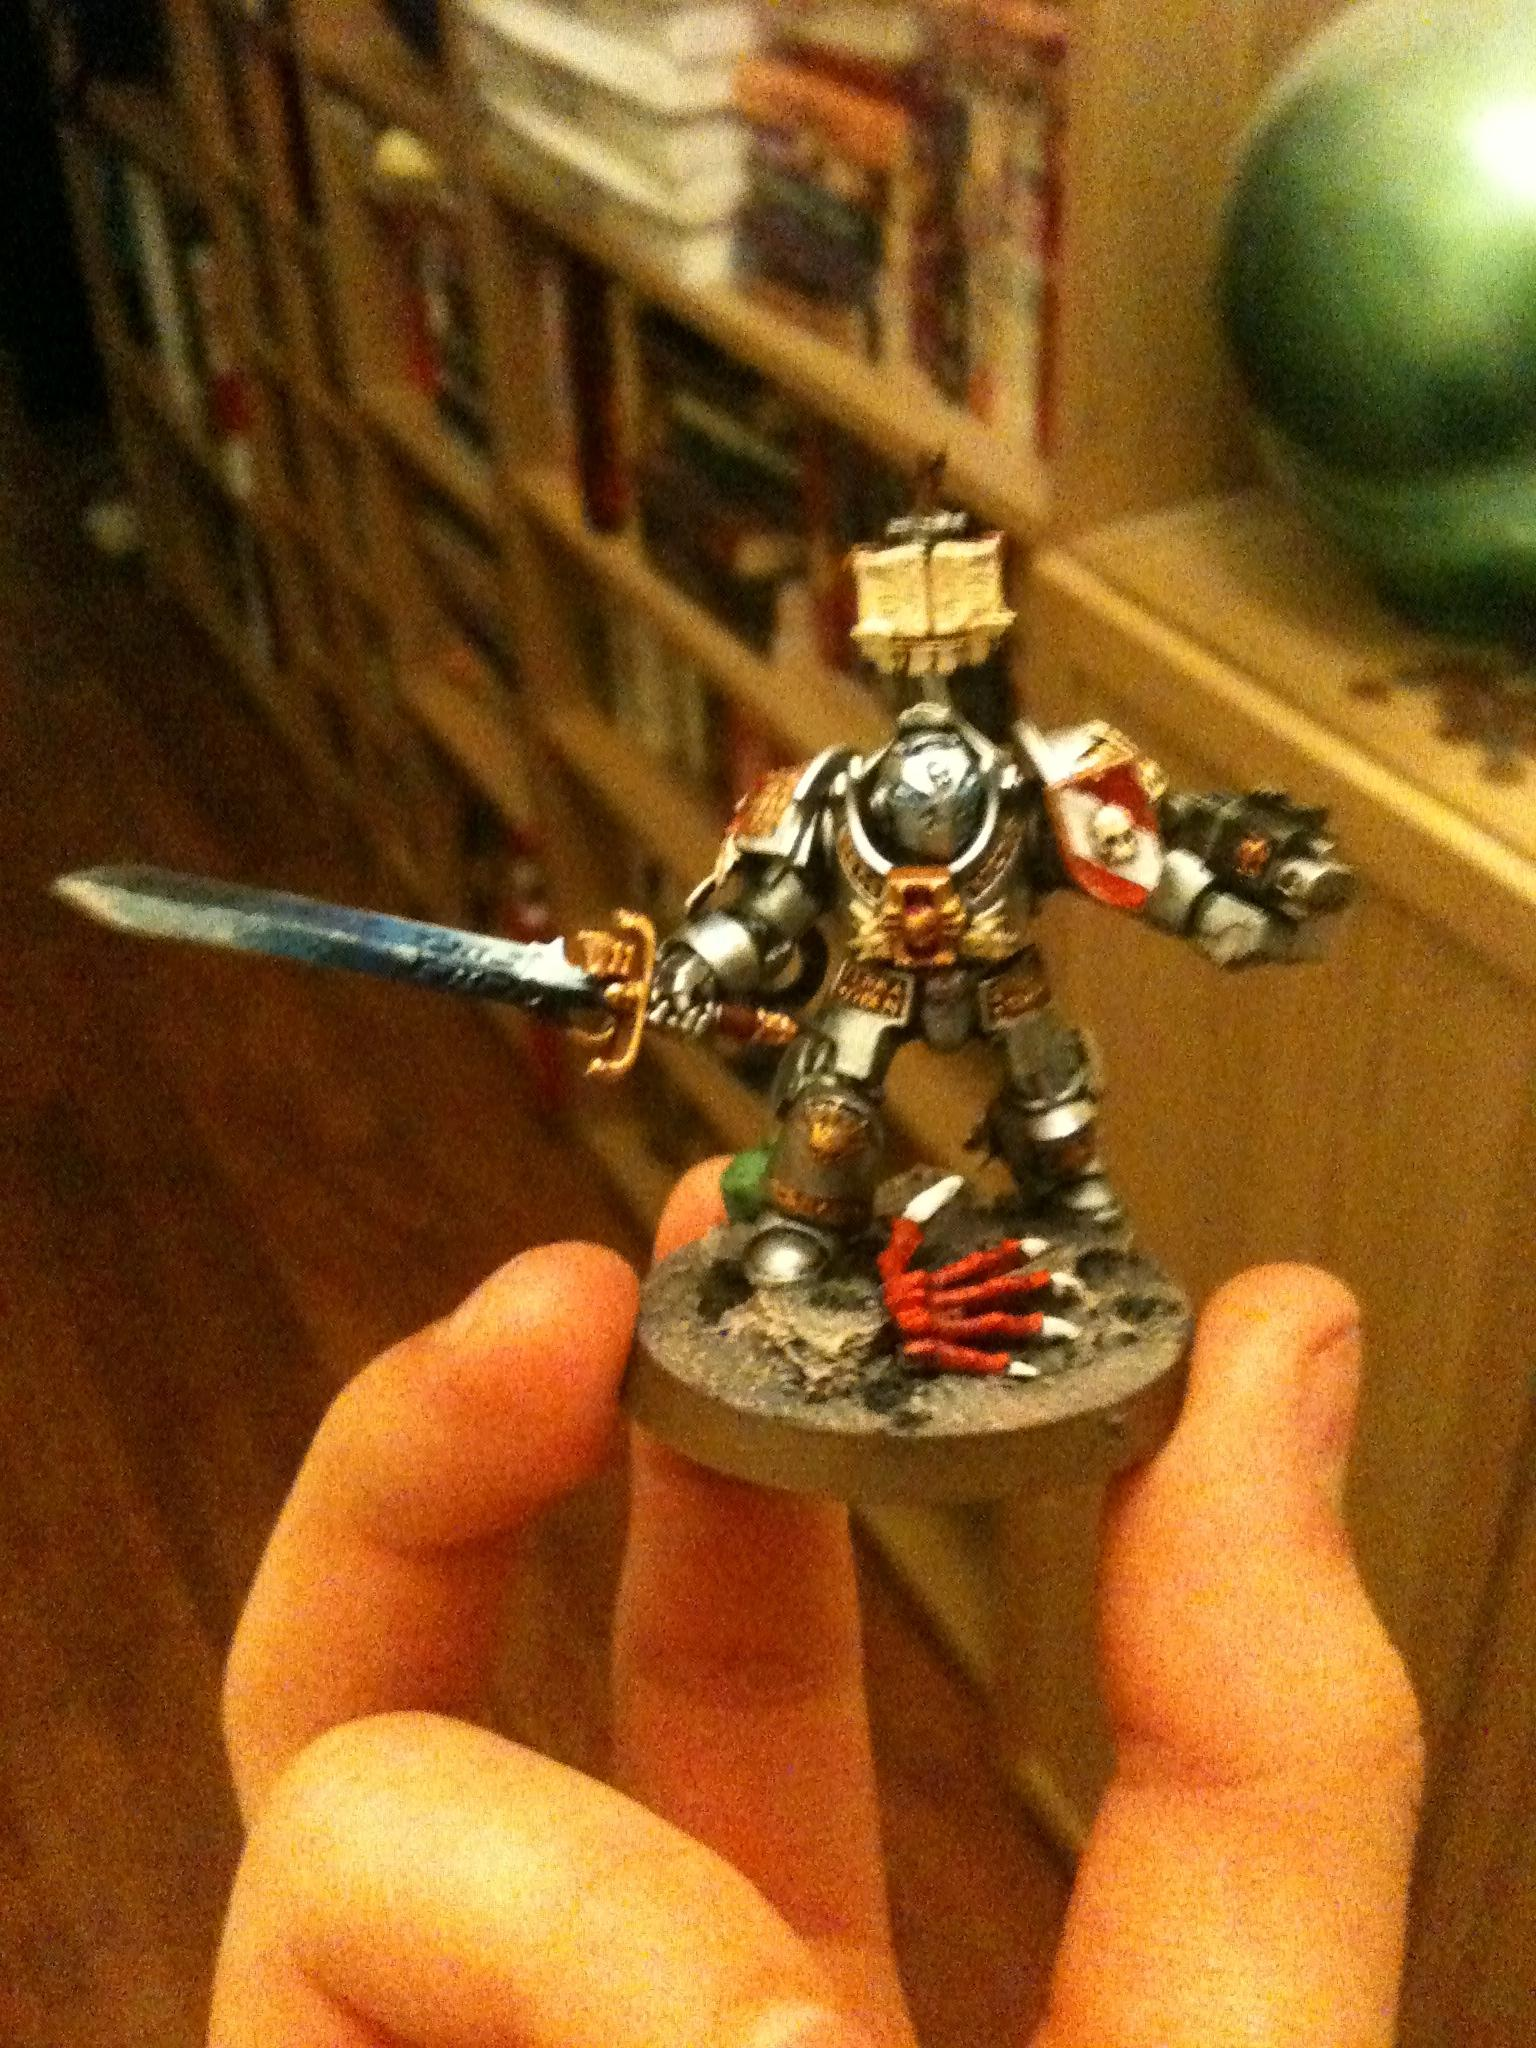 This was the first one I made and painted. A test run to see how the paints and everything work, ie glazes and basing.